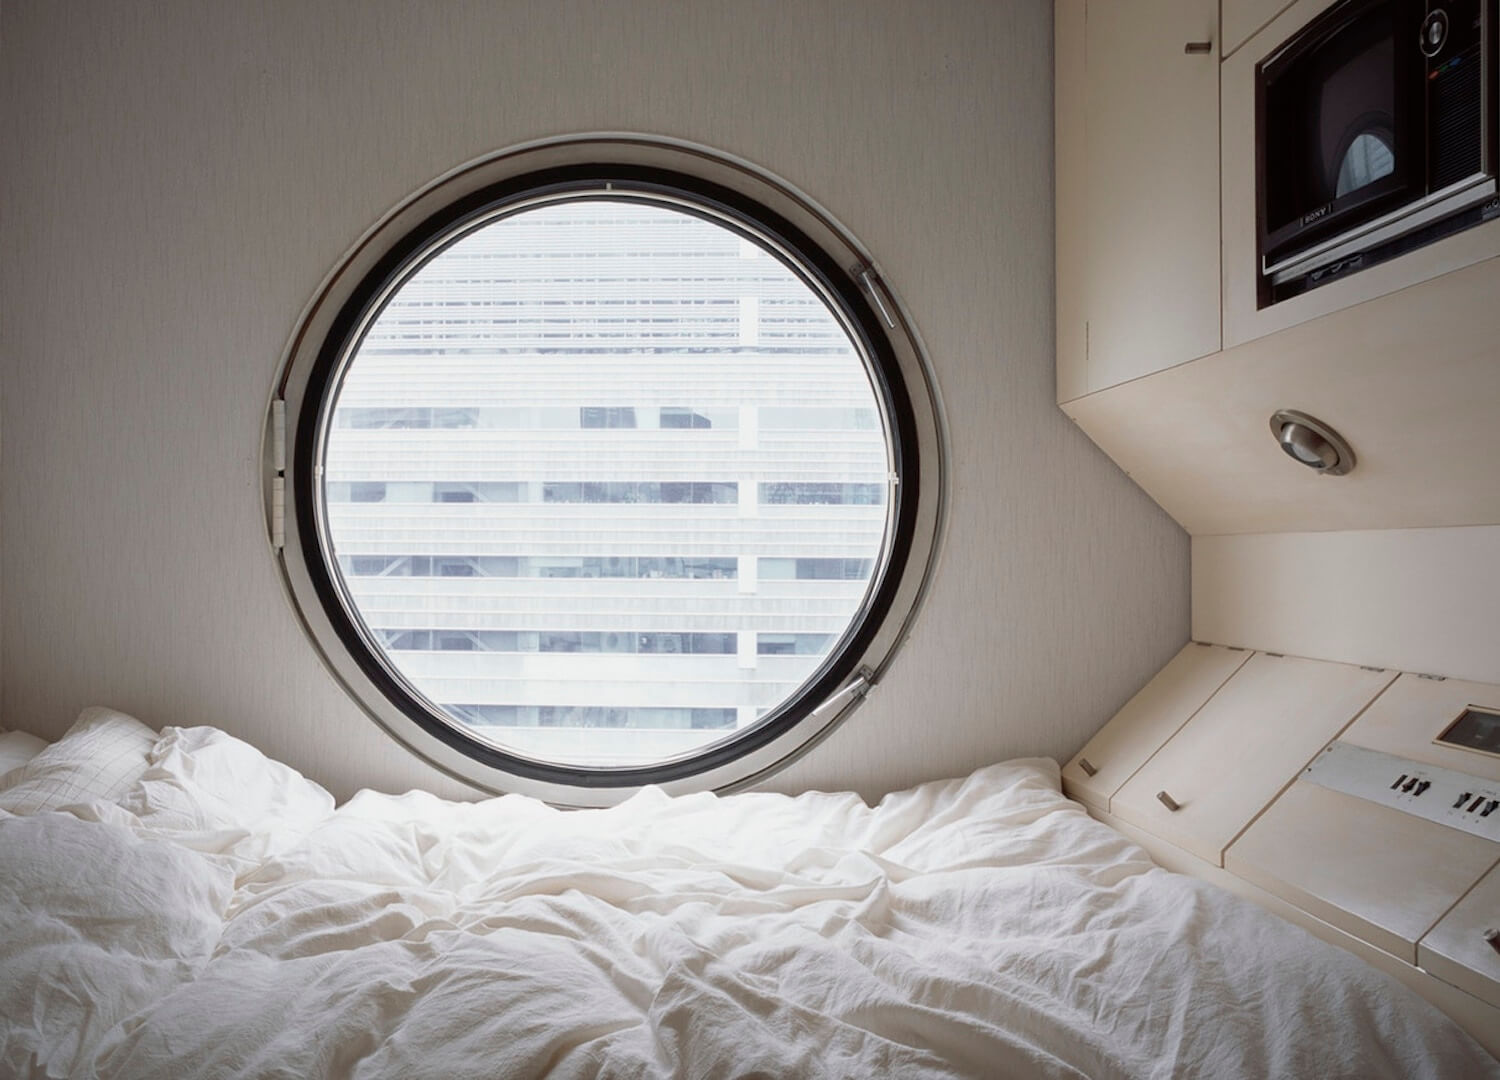 est living a japanese story travis walton Nakagin Capsule Tower Tokyo 3